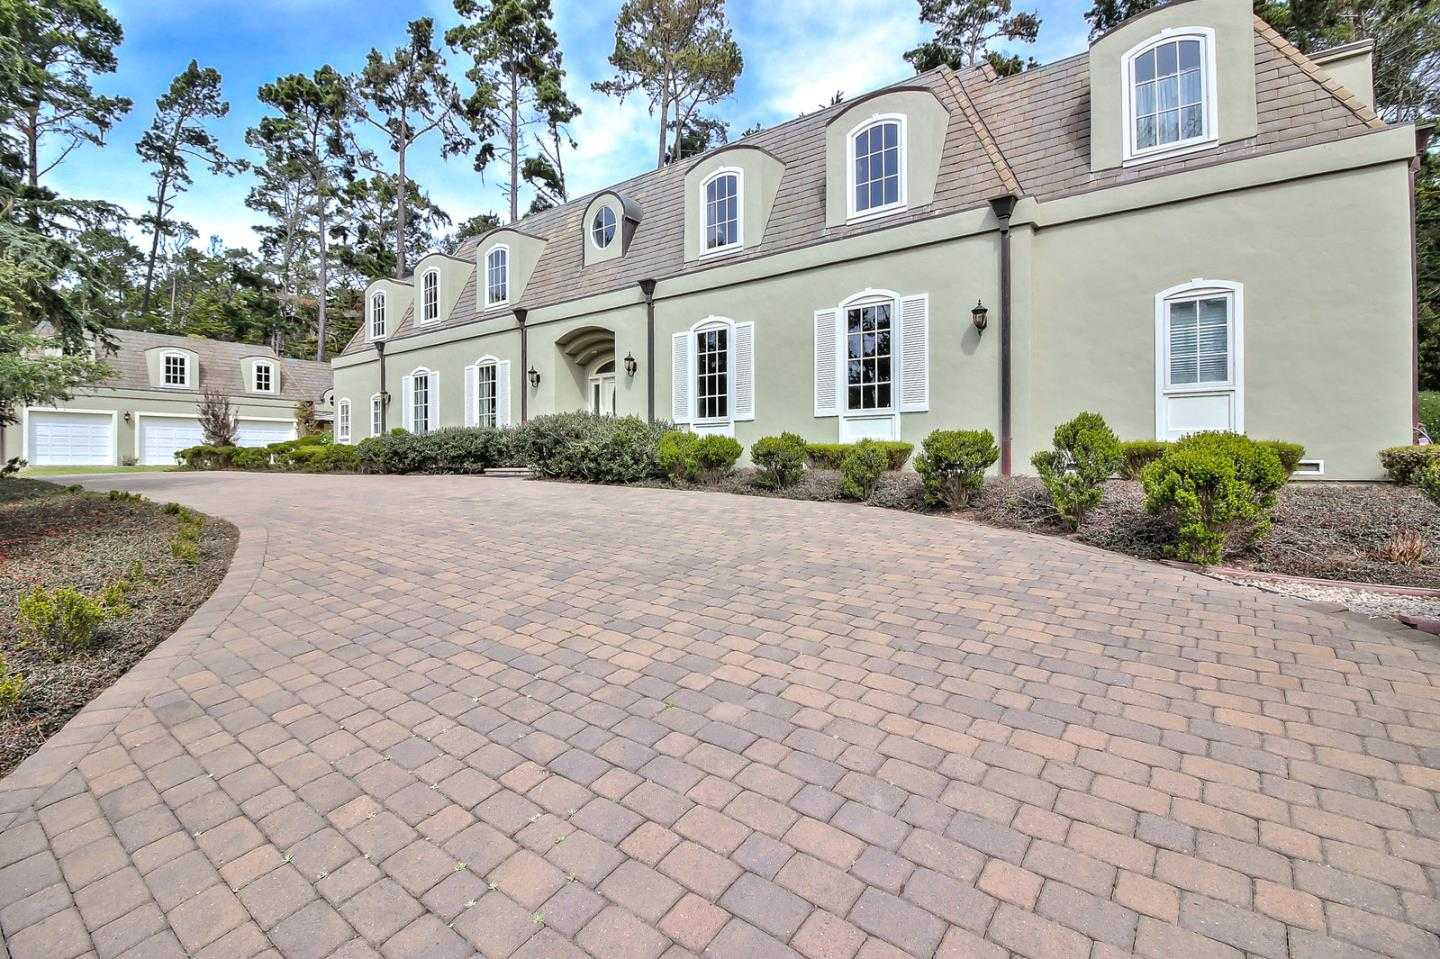 $4,900,000 - 7Br/7Ba -  for Sale in Pebble Beach